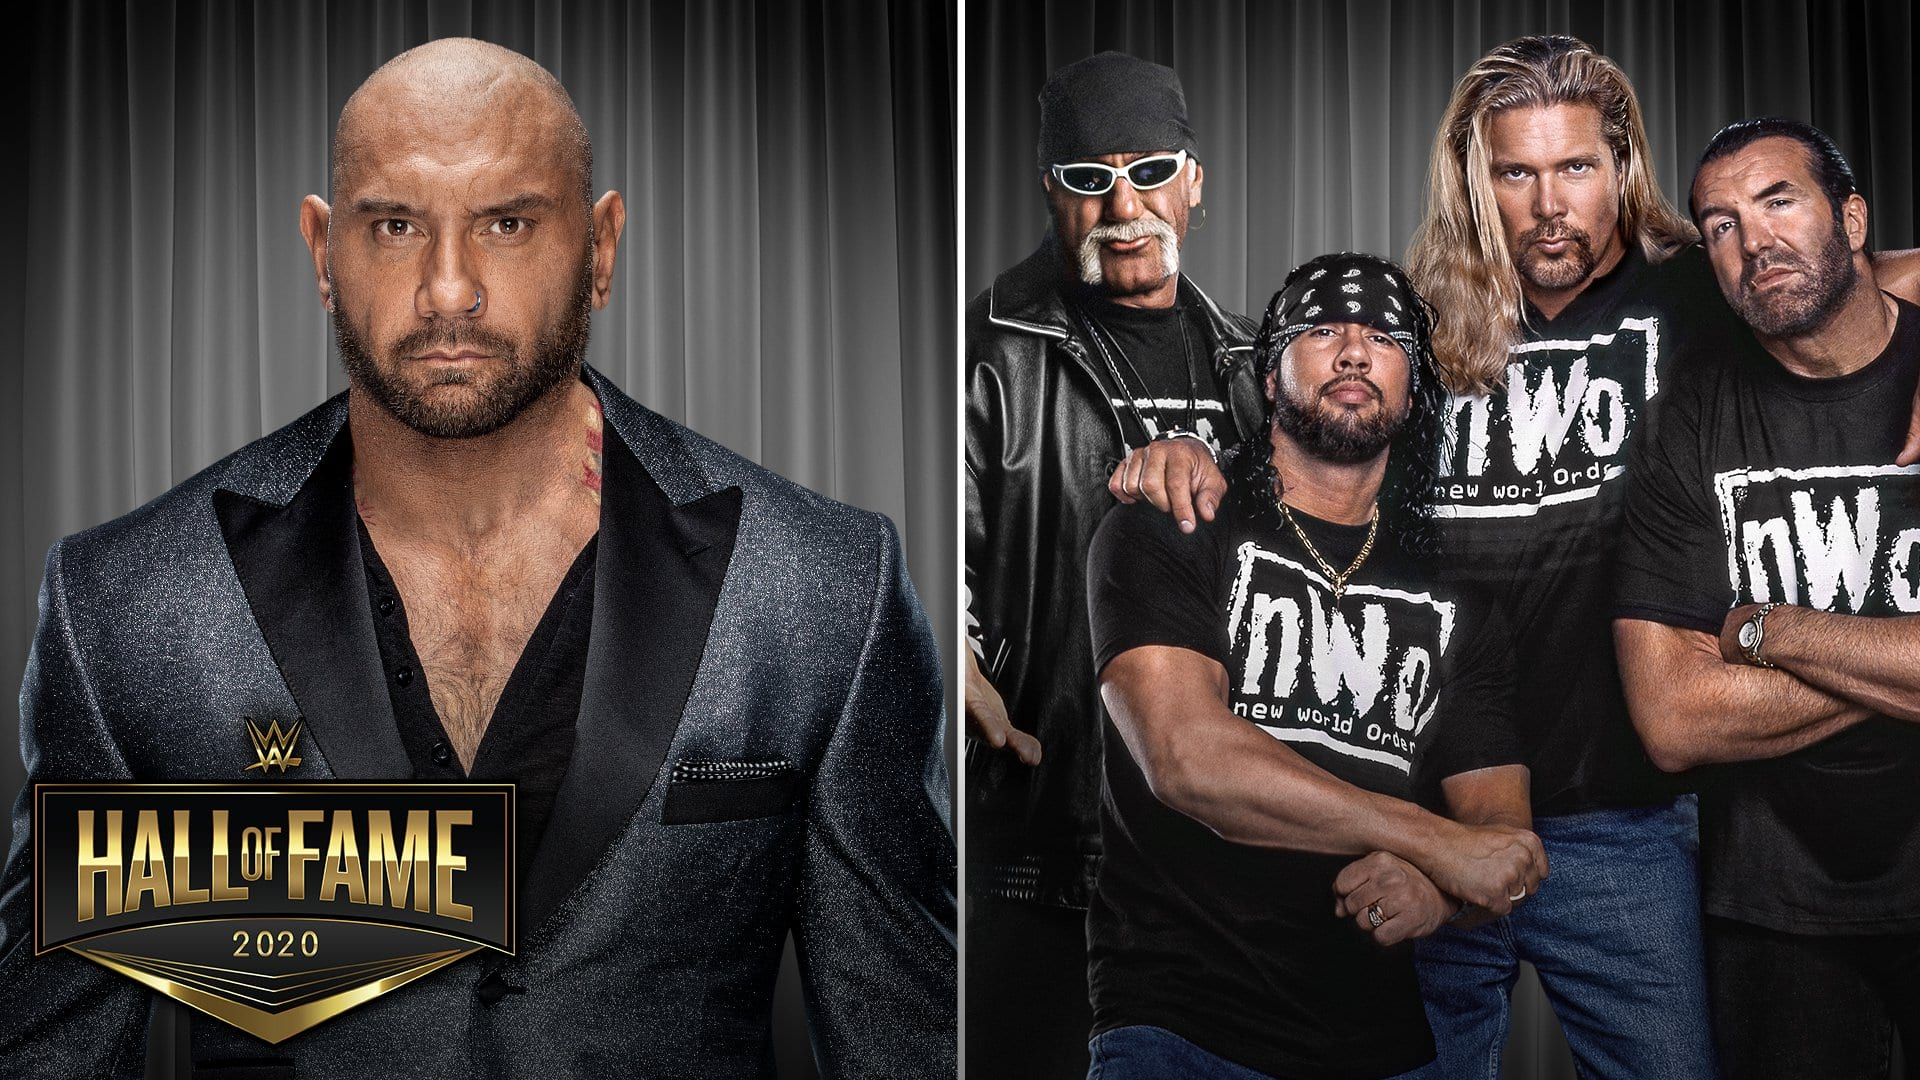 WWE Hall of Fame Class of 2020 will be inducted during WrestleMania 37 weekend